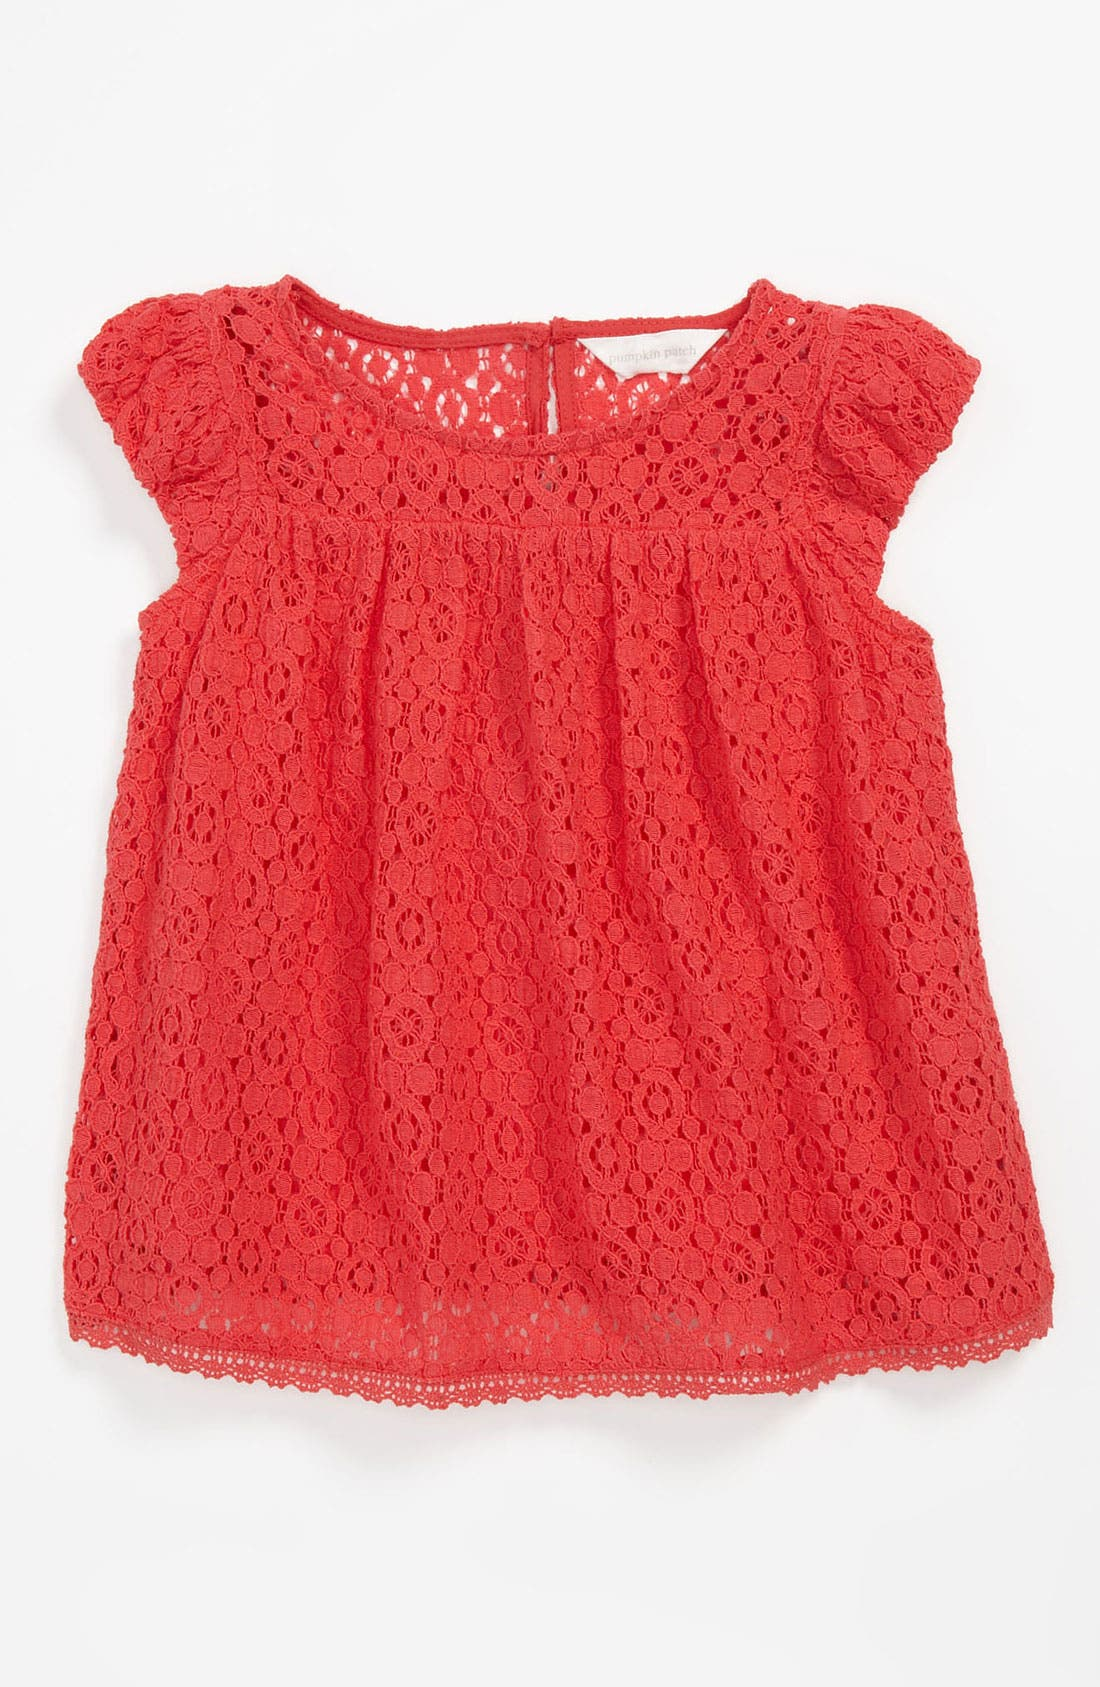 Alternate Image 1 Selected - Pumpkin Patch Lace Top (Baby)